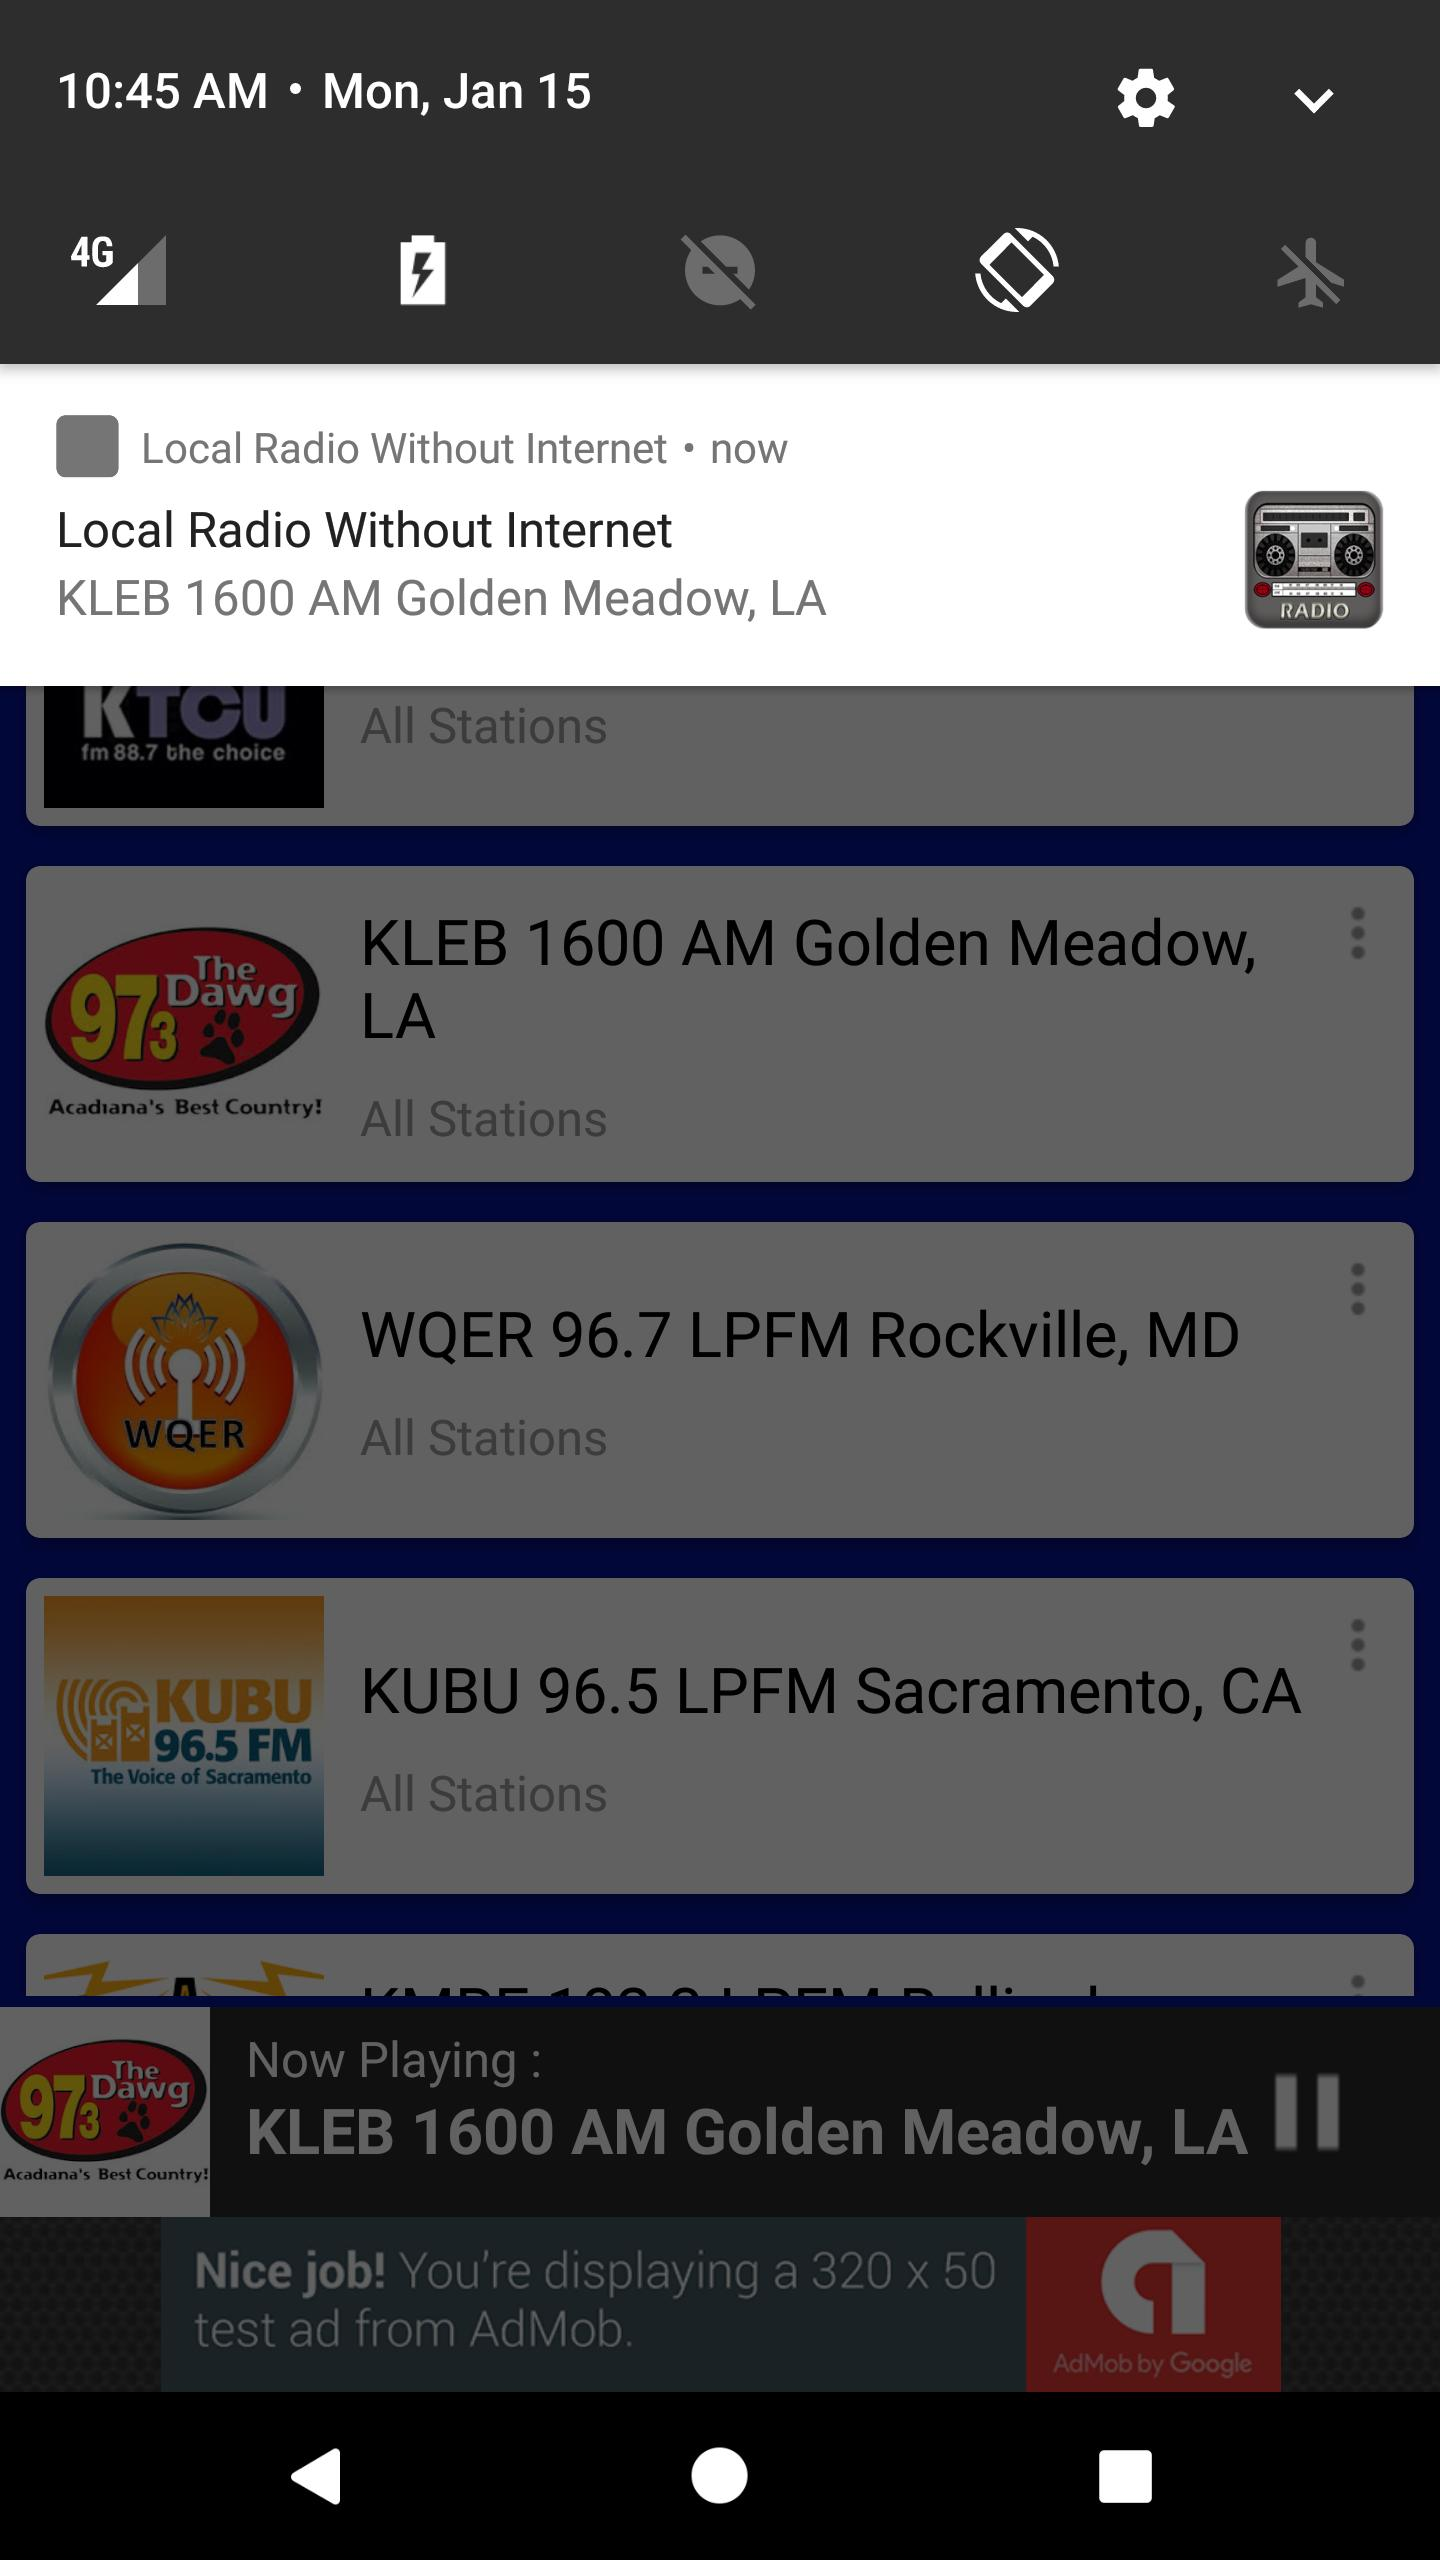 Local Radio Without Internet for Android - APK Download